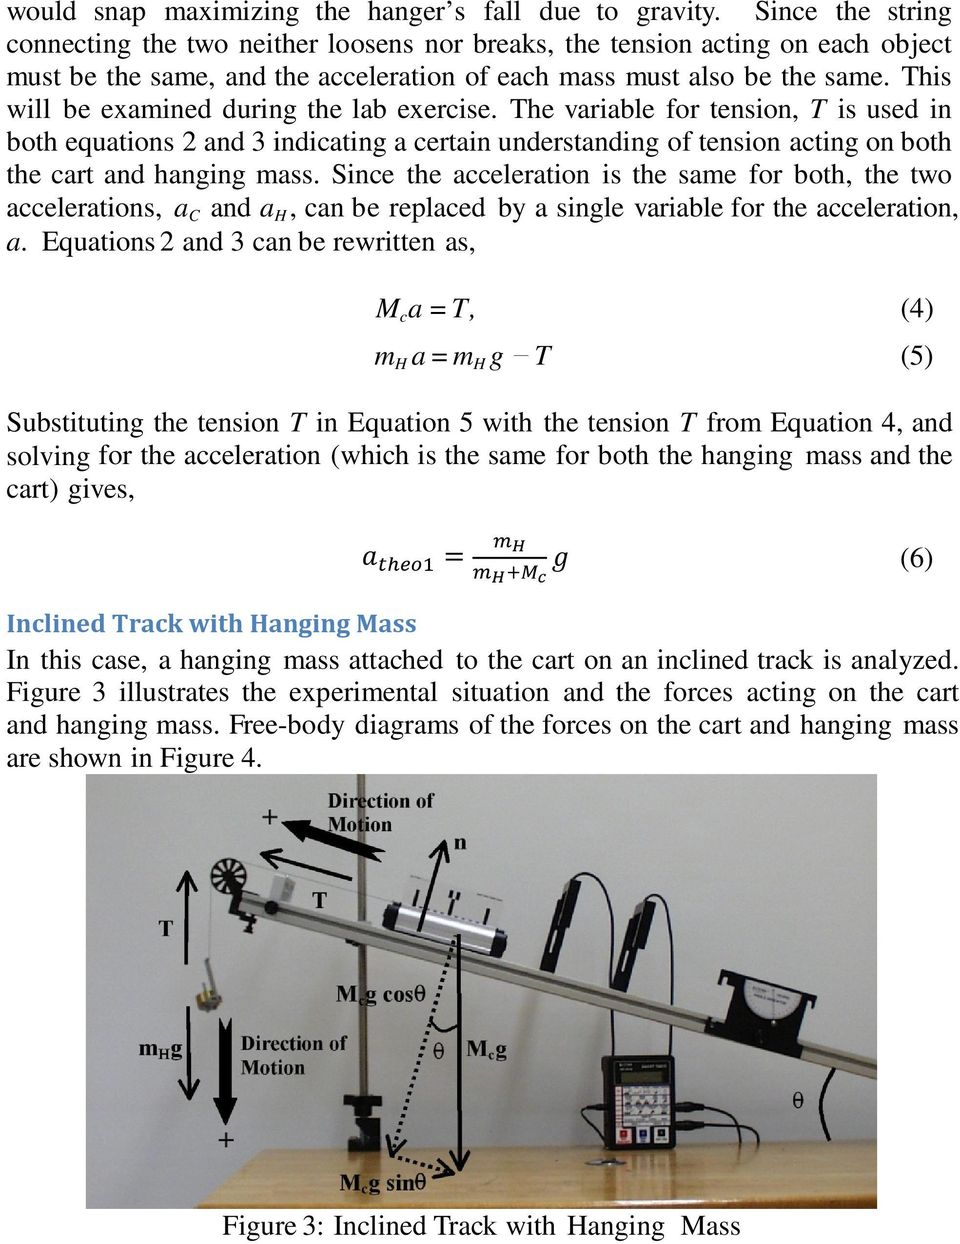 This will be examined during the lab exercise. The variable for tension, T is used in both equations 2 and 3 indicating a certain understanding of tension acting on both the cart and hanging mass.